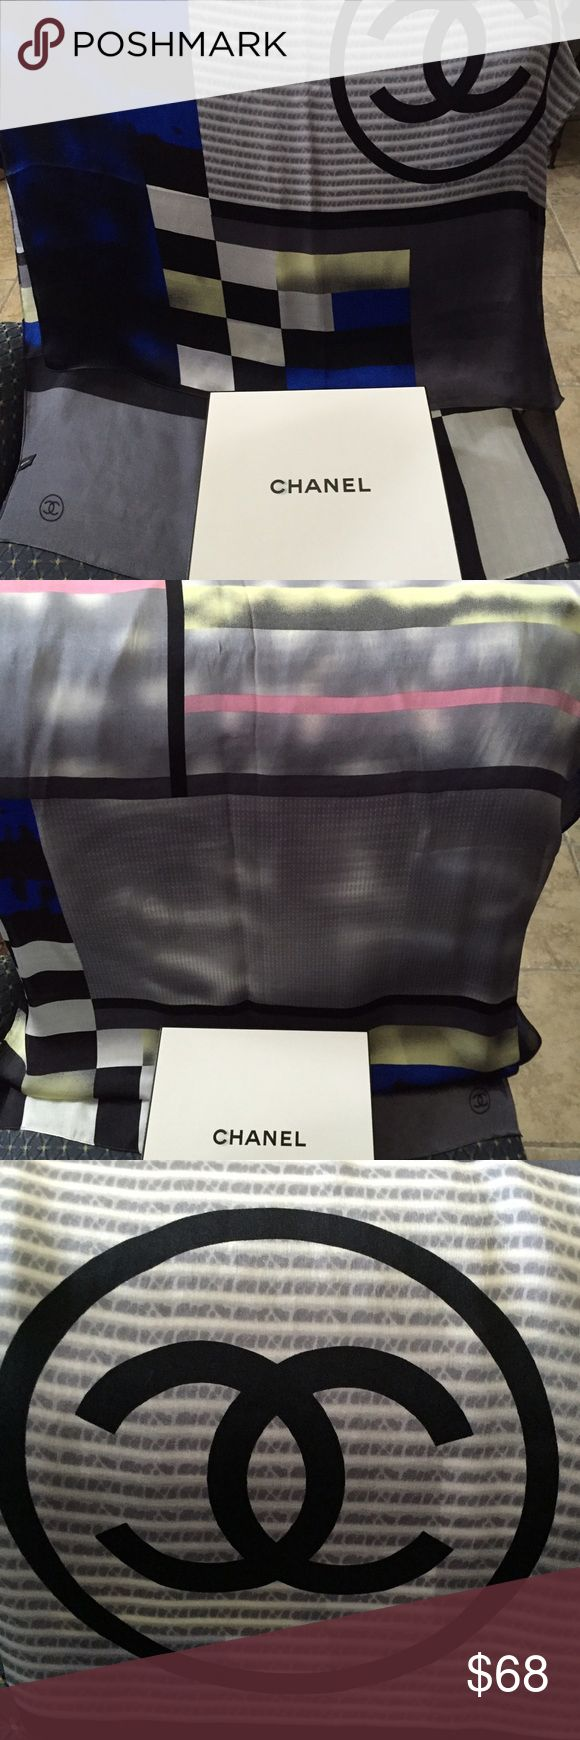 So Chanel scarf NWOT Chanel inspired scarf 💯 silk, beautiful design & colors, new never used. Box include it 🎁 CHANEL Accessories Scarves & Wraps